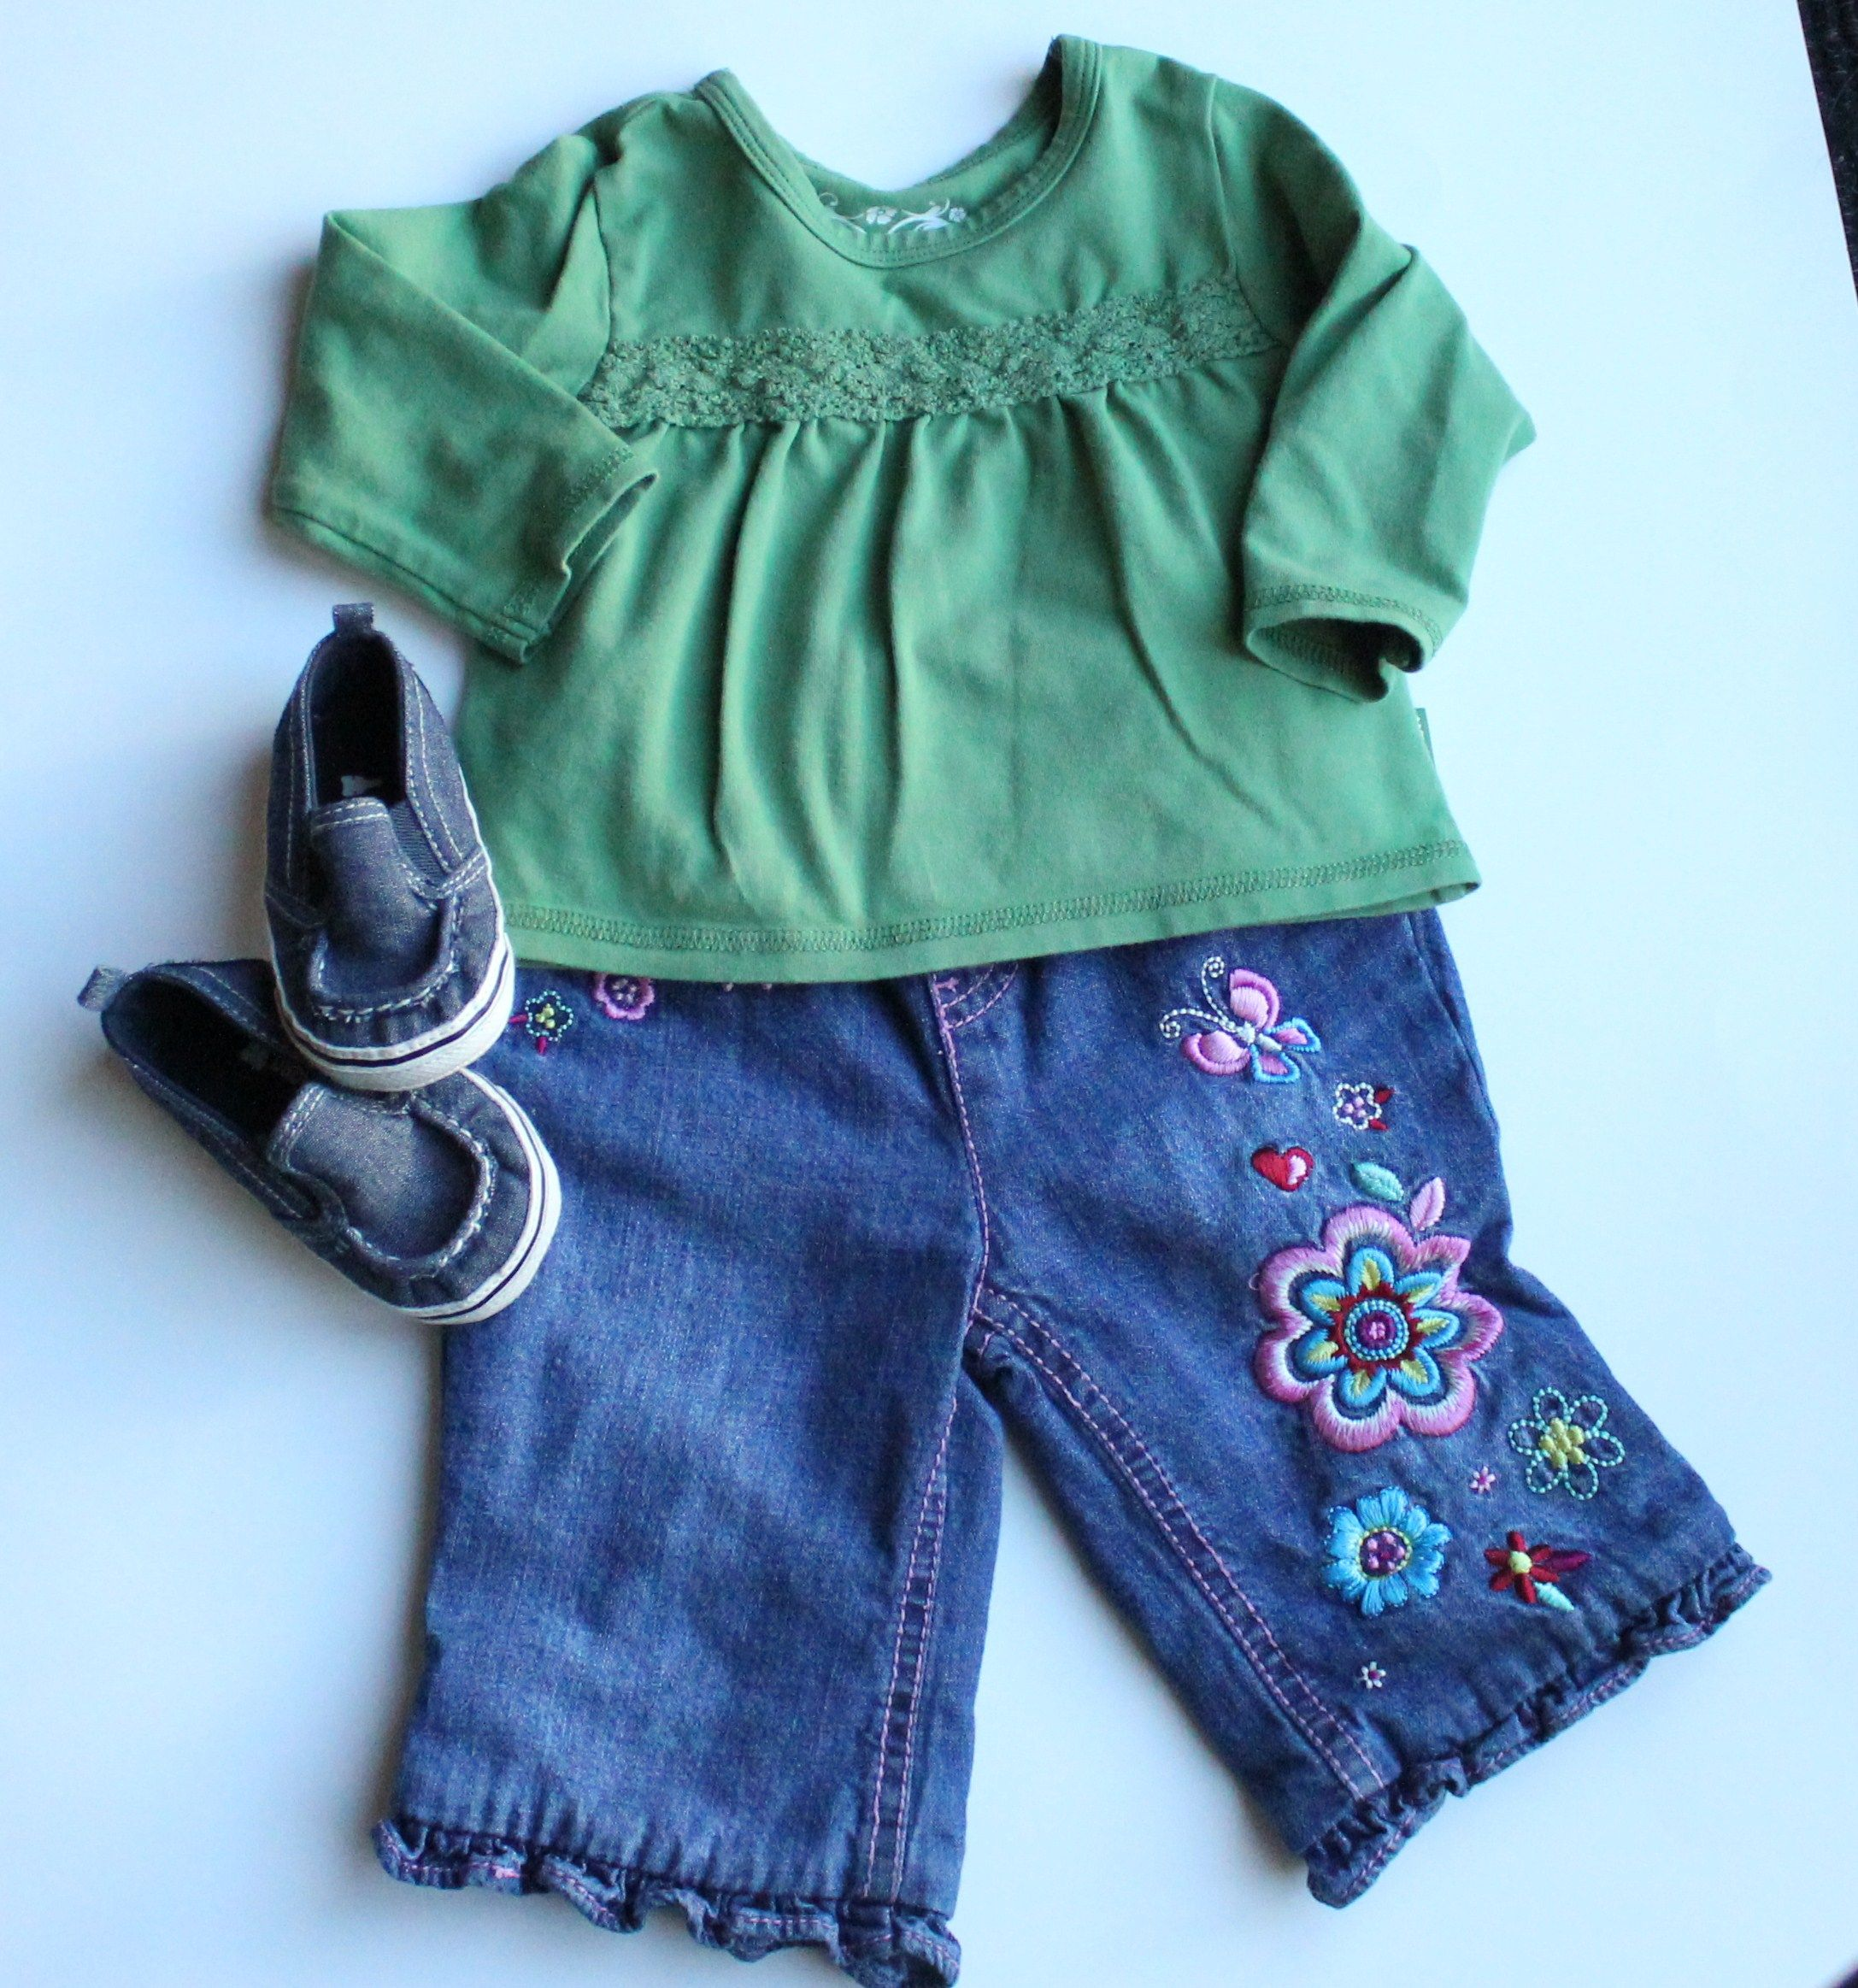 Jeans And Top By Children S Place Shoes By Baby Gap Items For This